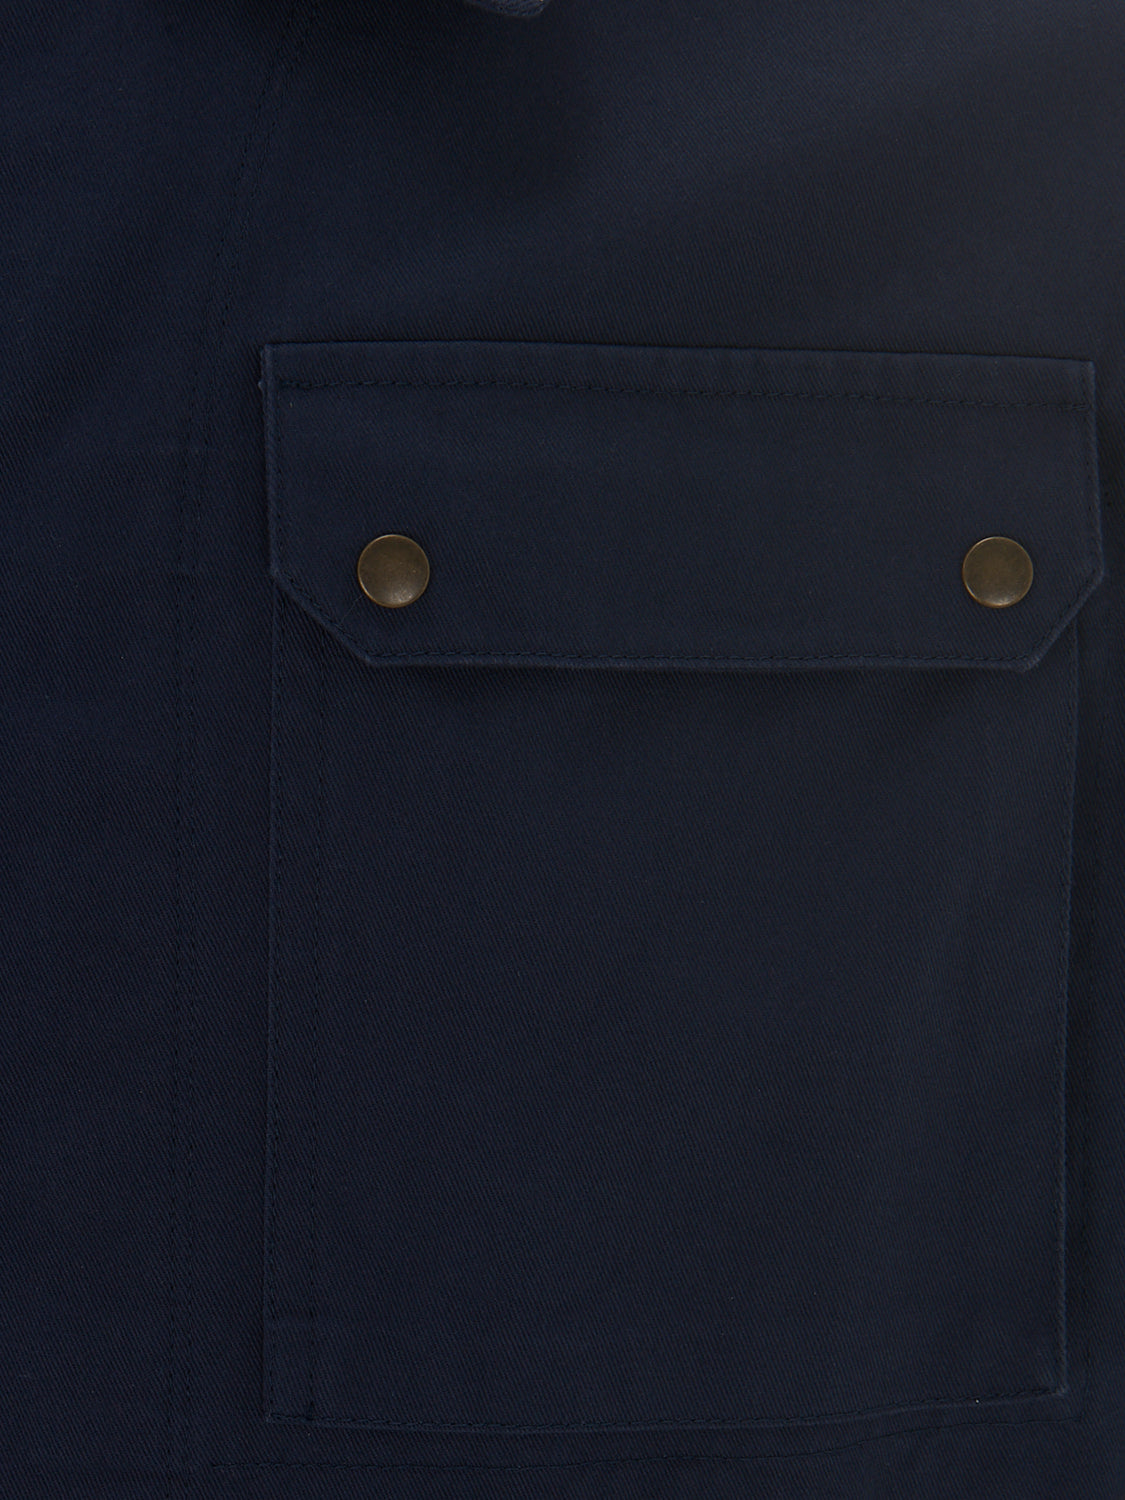 Letters From Norman Ali Military Shirt Jacket - Navy